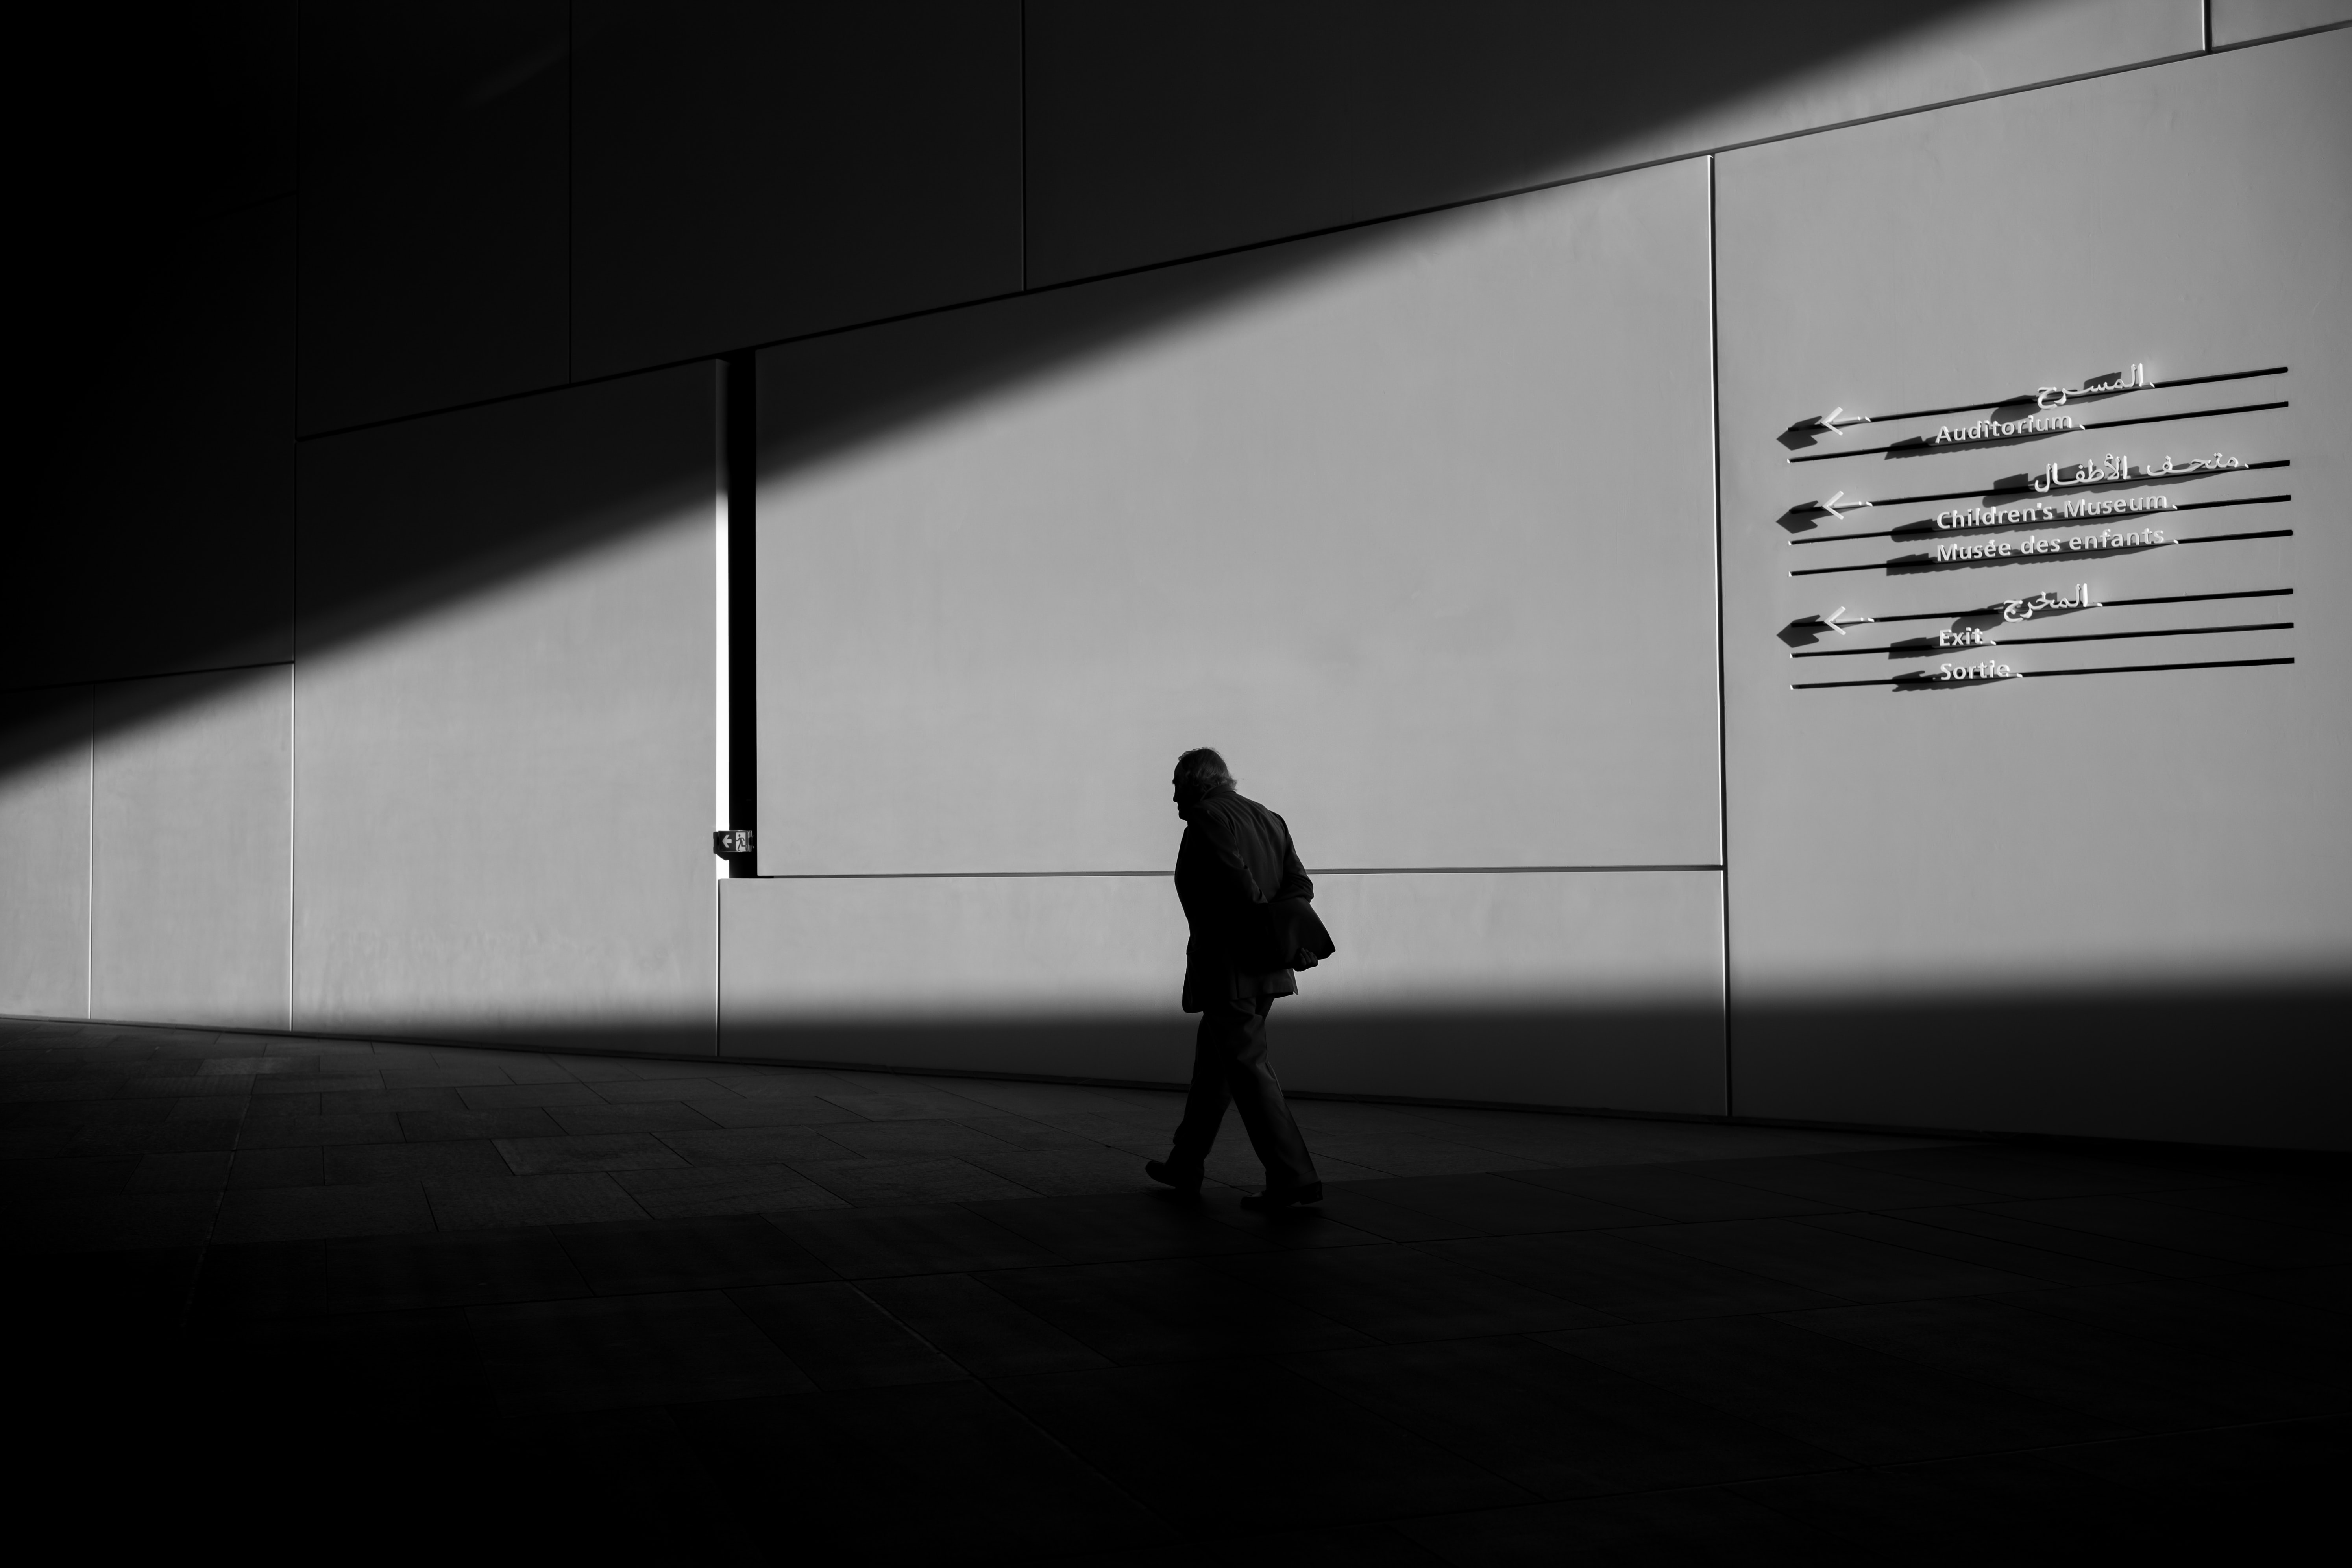 silhouette of man walking on pathway